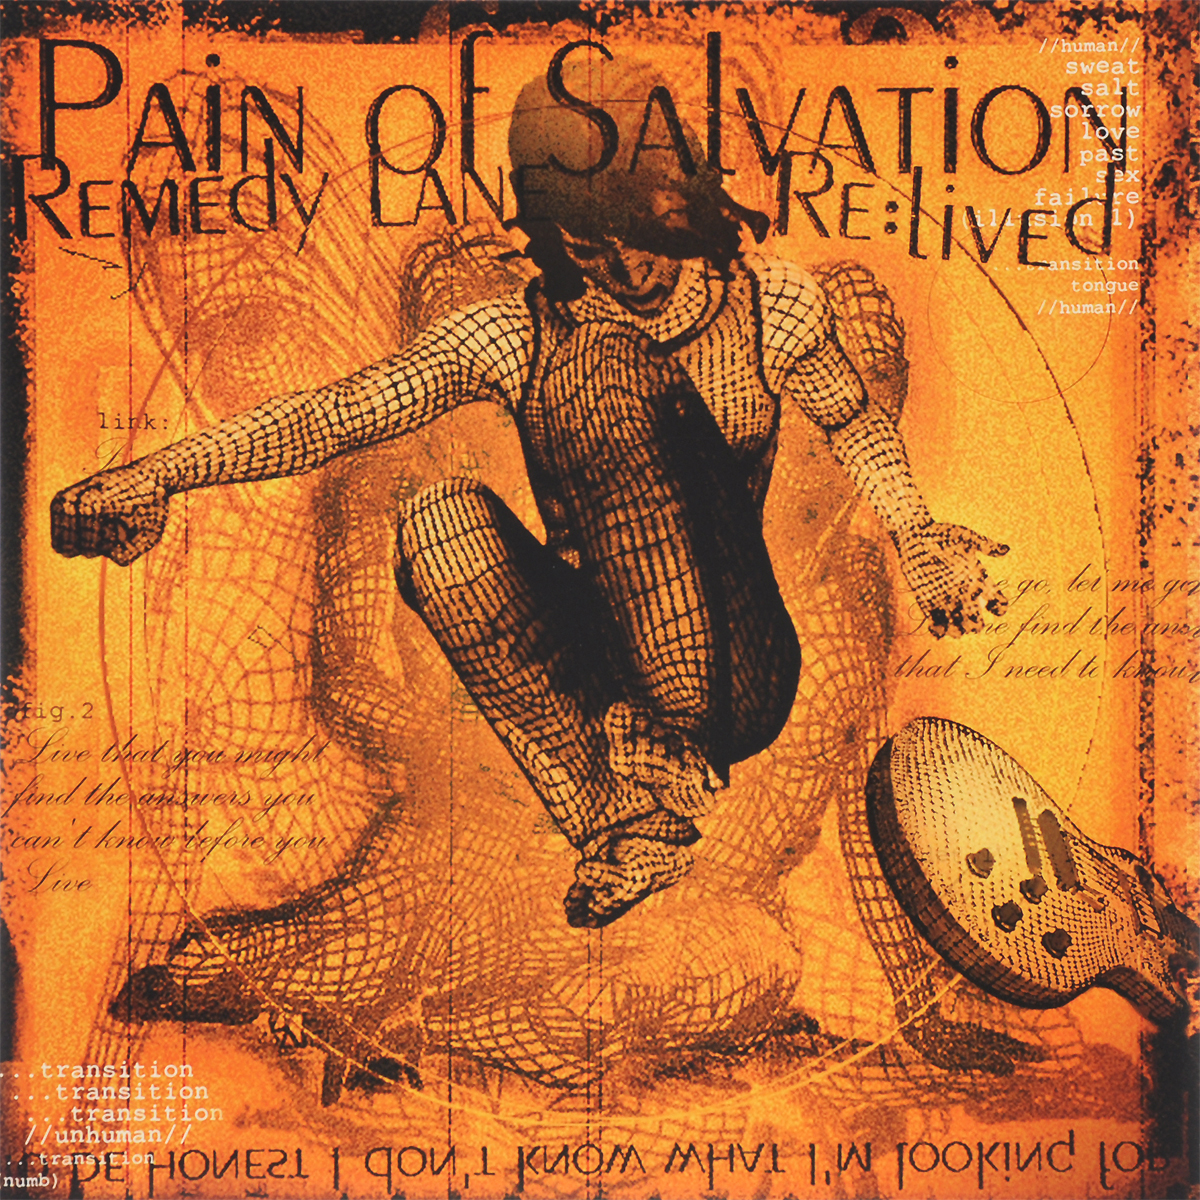 Pain Of Salvation Pain Of Salvation. Remedy Lane Re:Lived (2 LP + CD) виниловая пластинка pain of salvation remedy lane re lived 2lp cd